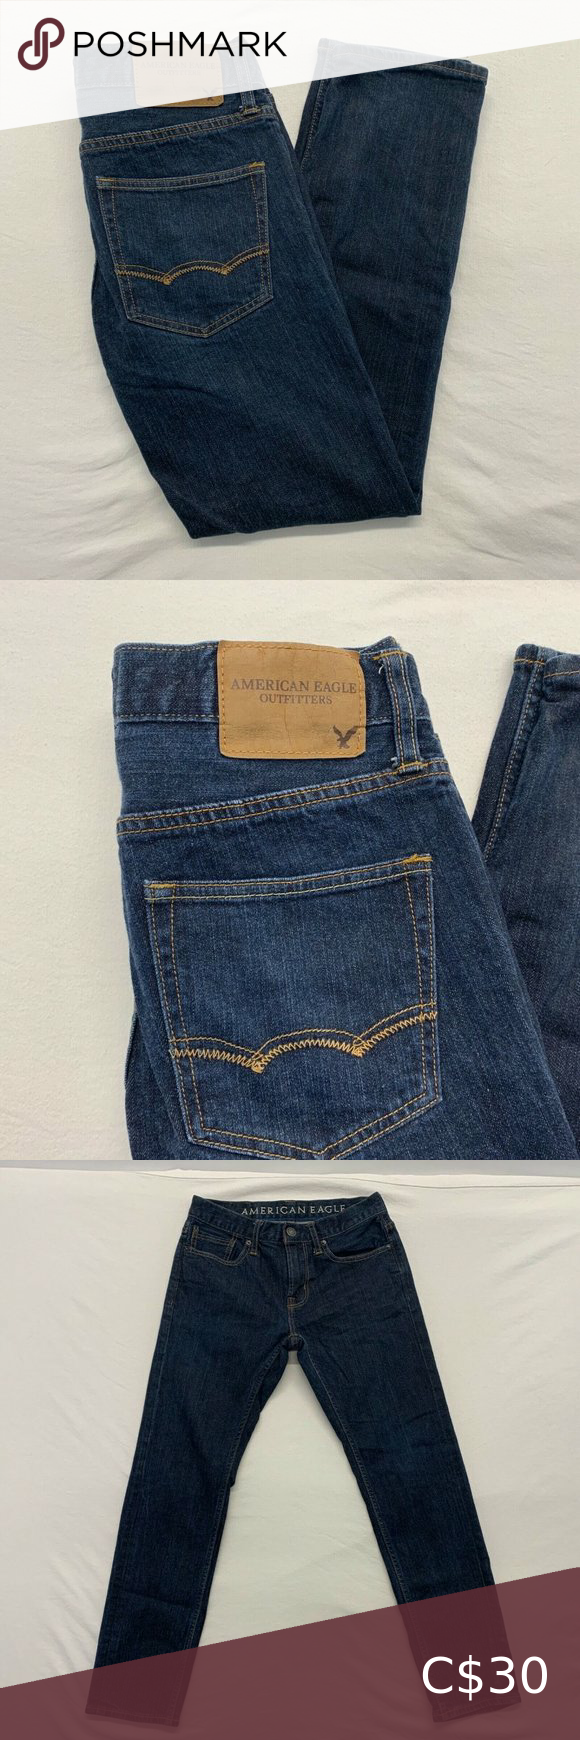 American eagle Skinny womens jeans size 4 R 8527 in 2020